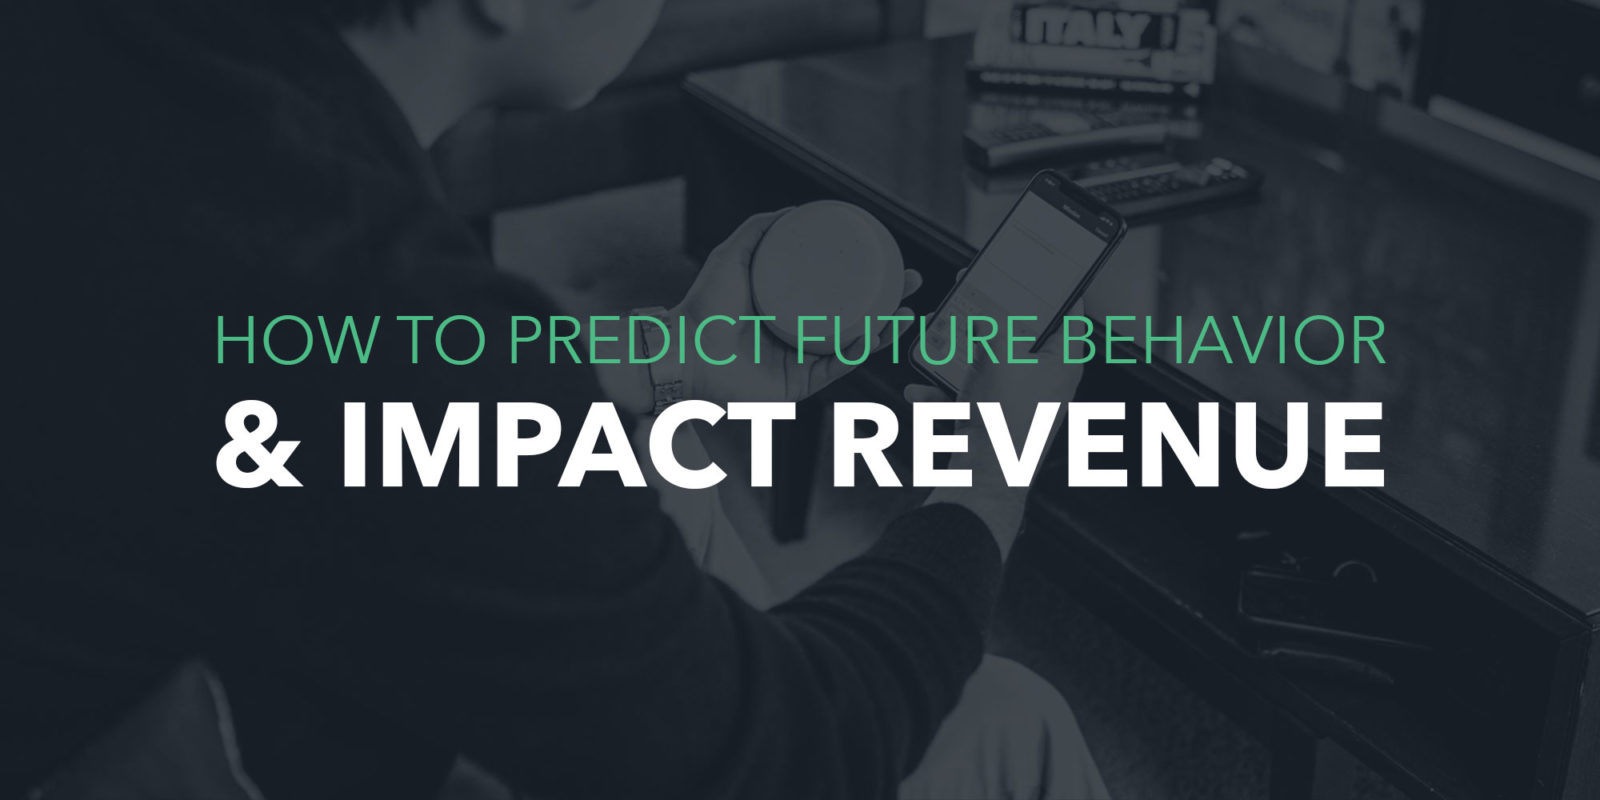 How to Predict Future Behavior & Impact Revenue